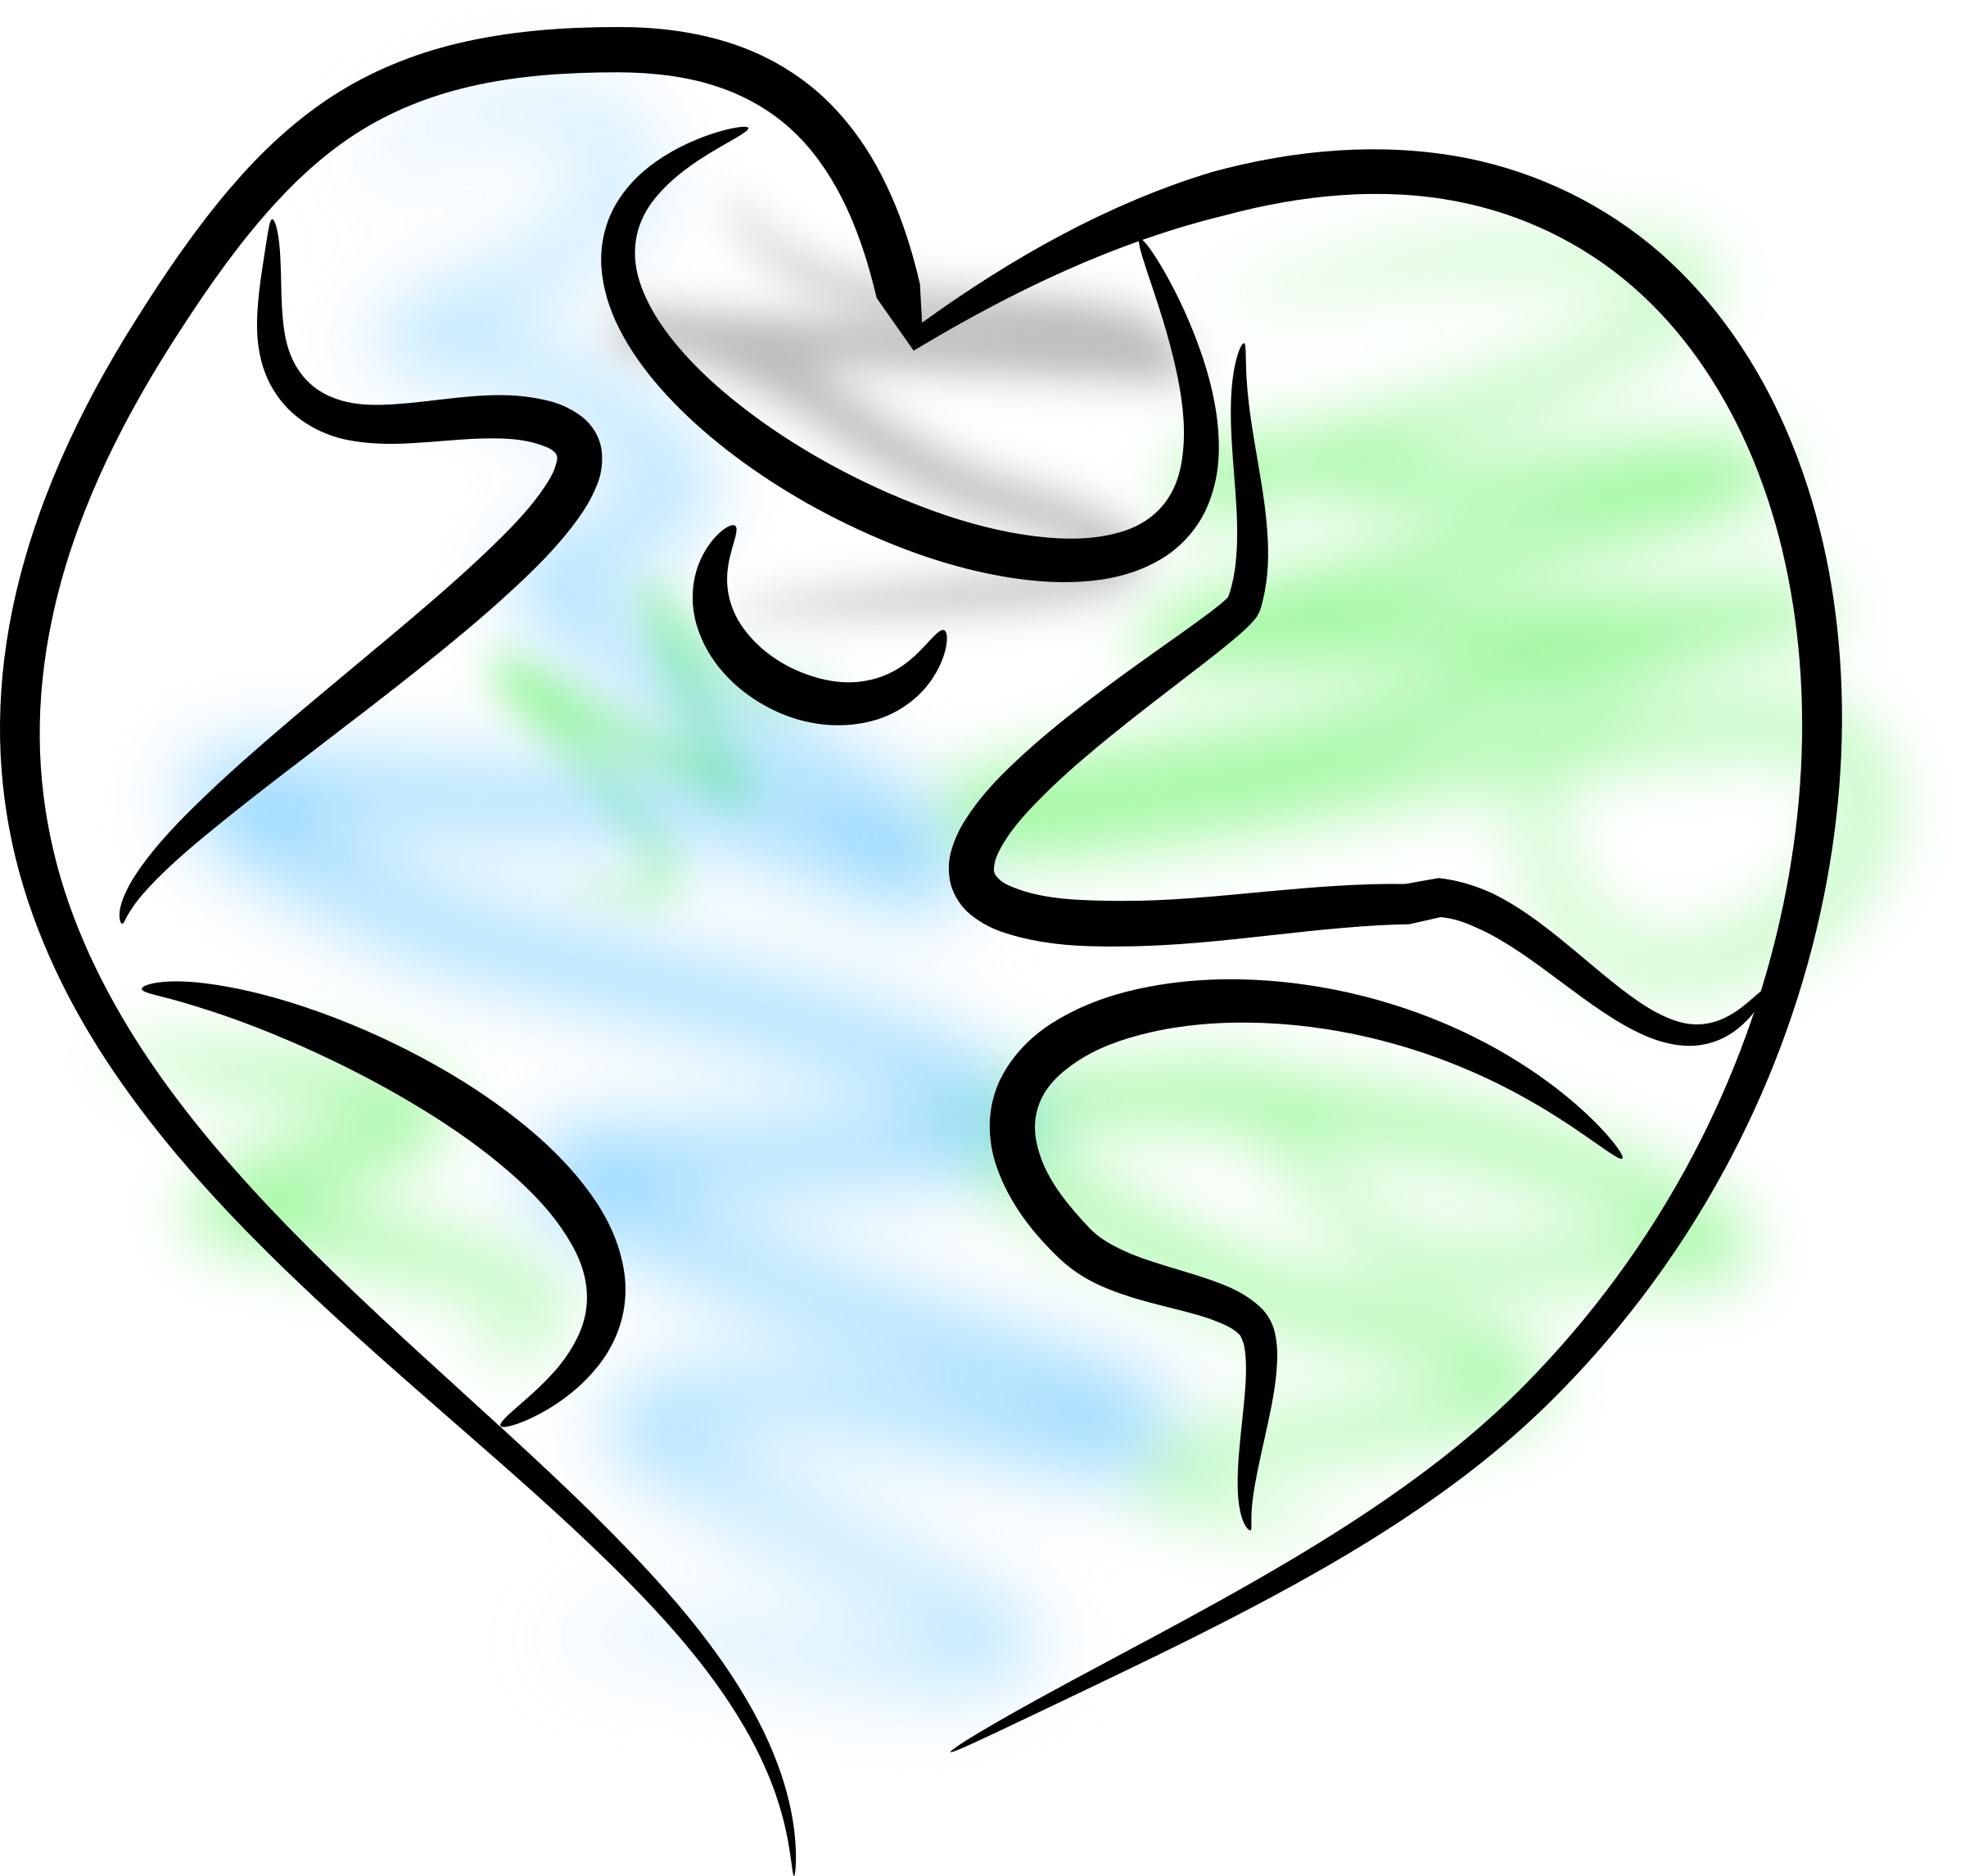 Earth heart clipart banner royalty free Clipart - Earth Heart banner royalty free